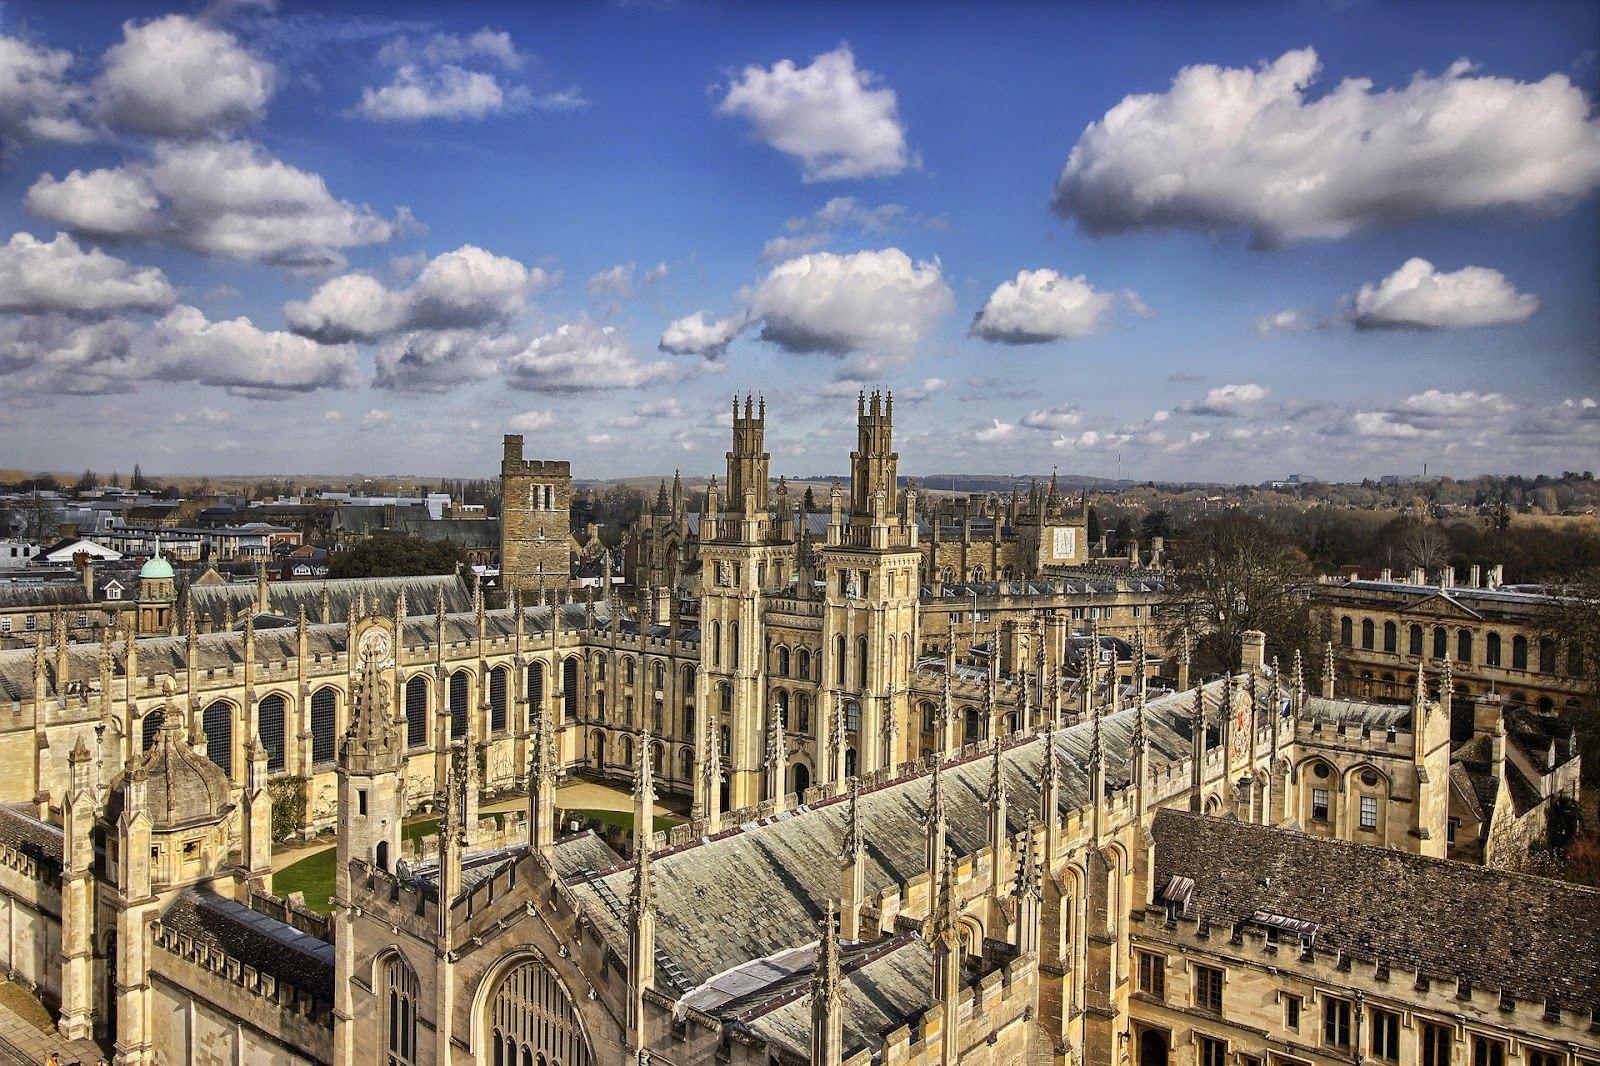 prestigious oxford university view from above. gothic architecture, large university campus in united kingdom on a sunny day.